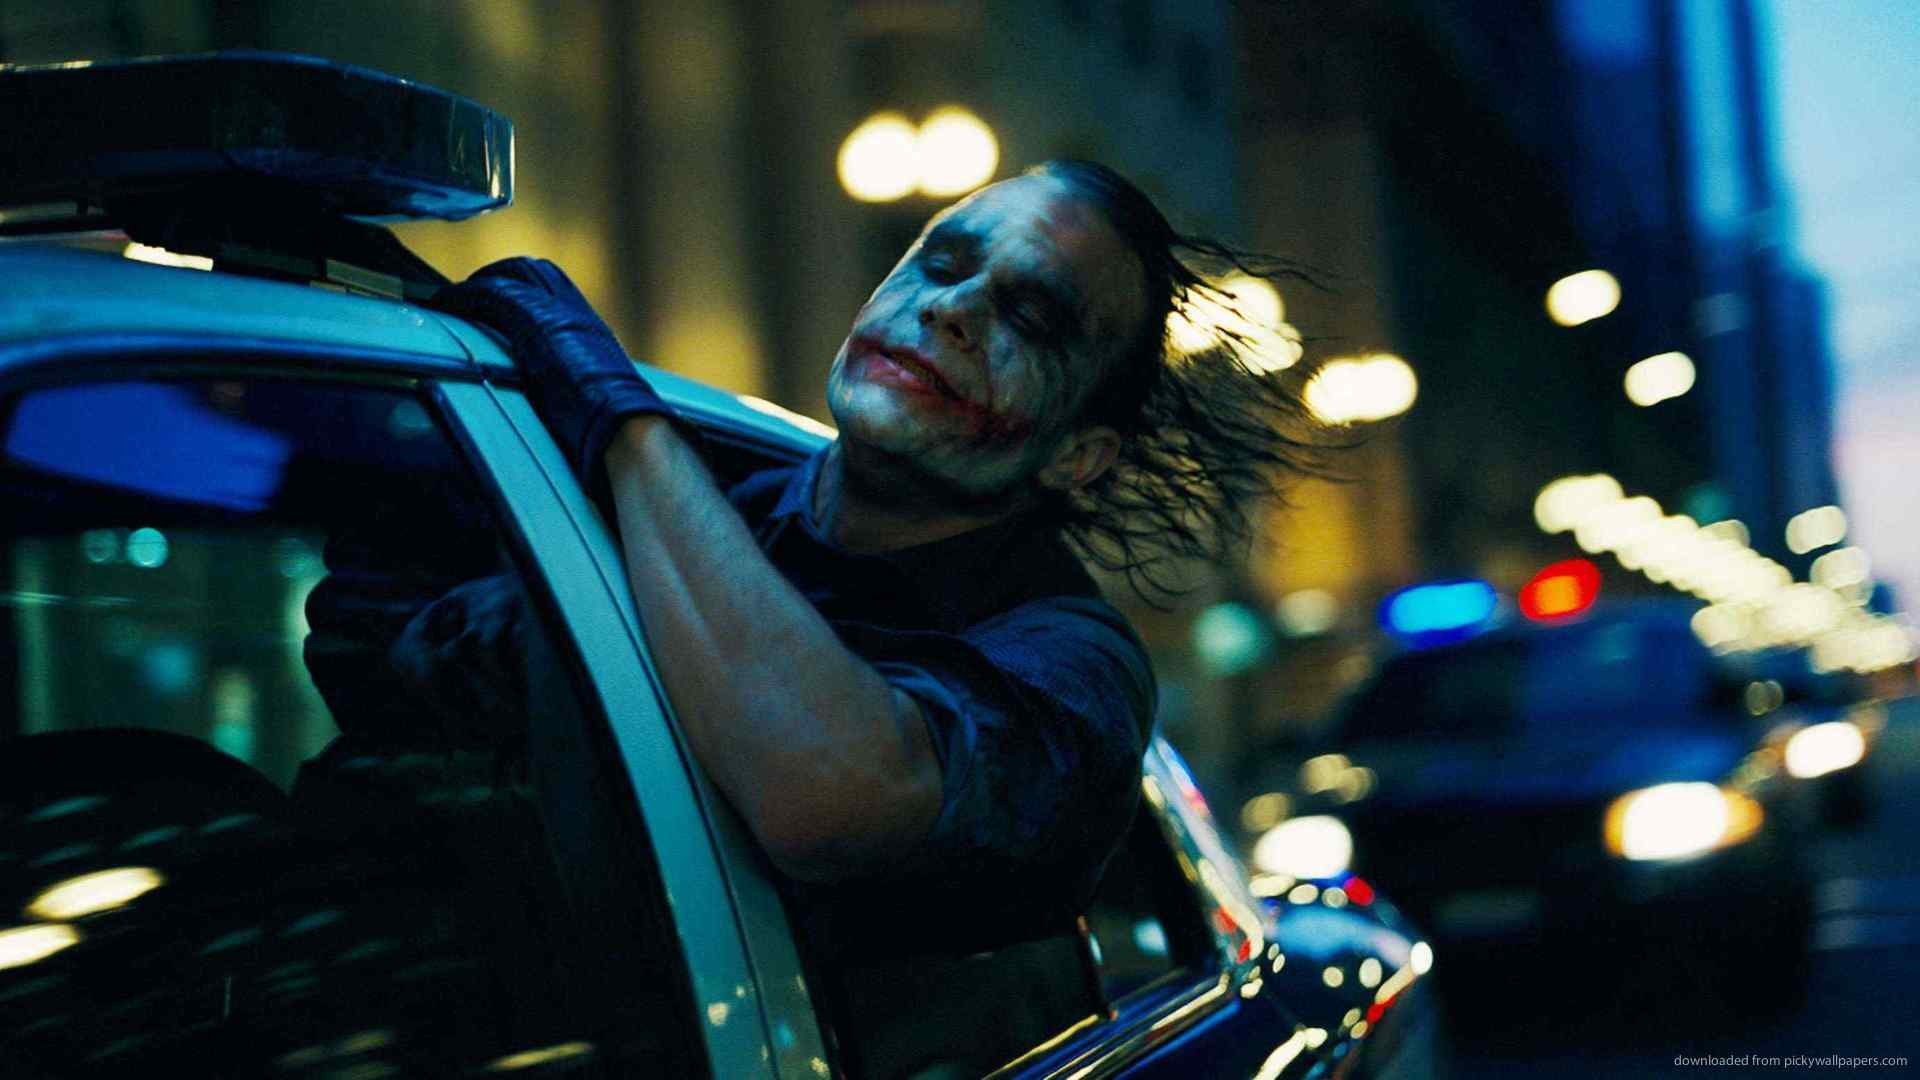 Blackberry, iPad, Joker In A Police Car Screensaver For Kindle3 And .